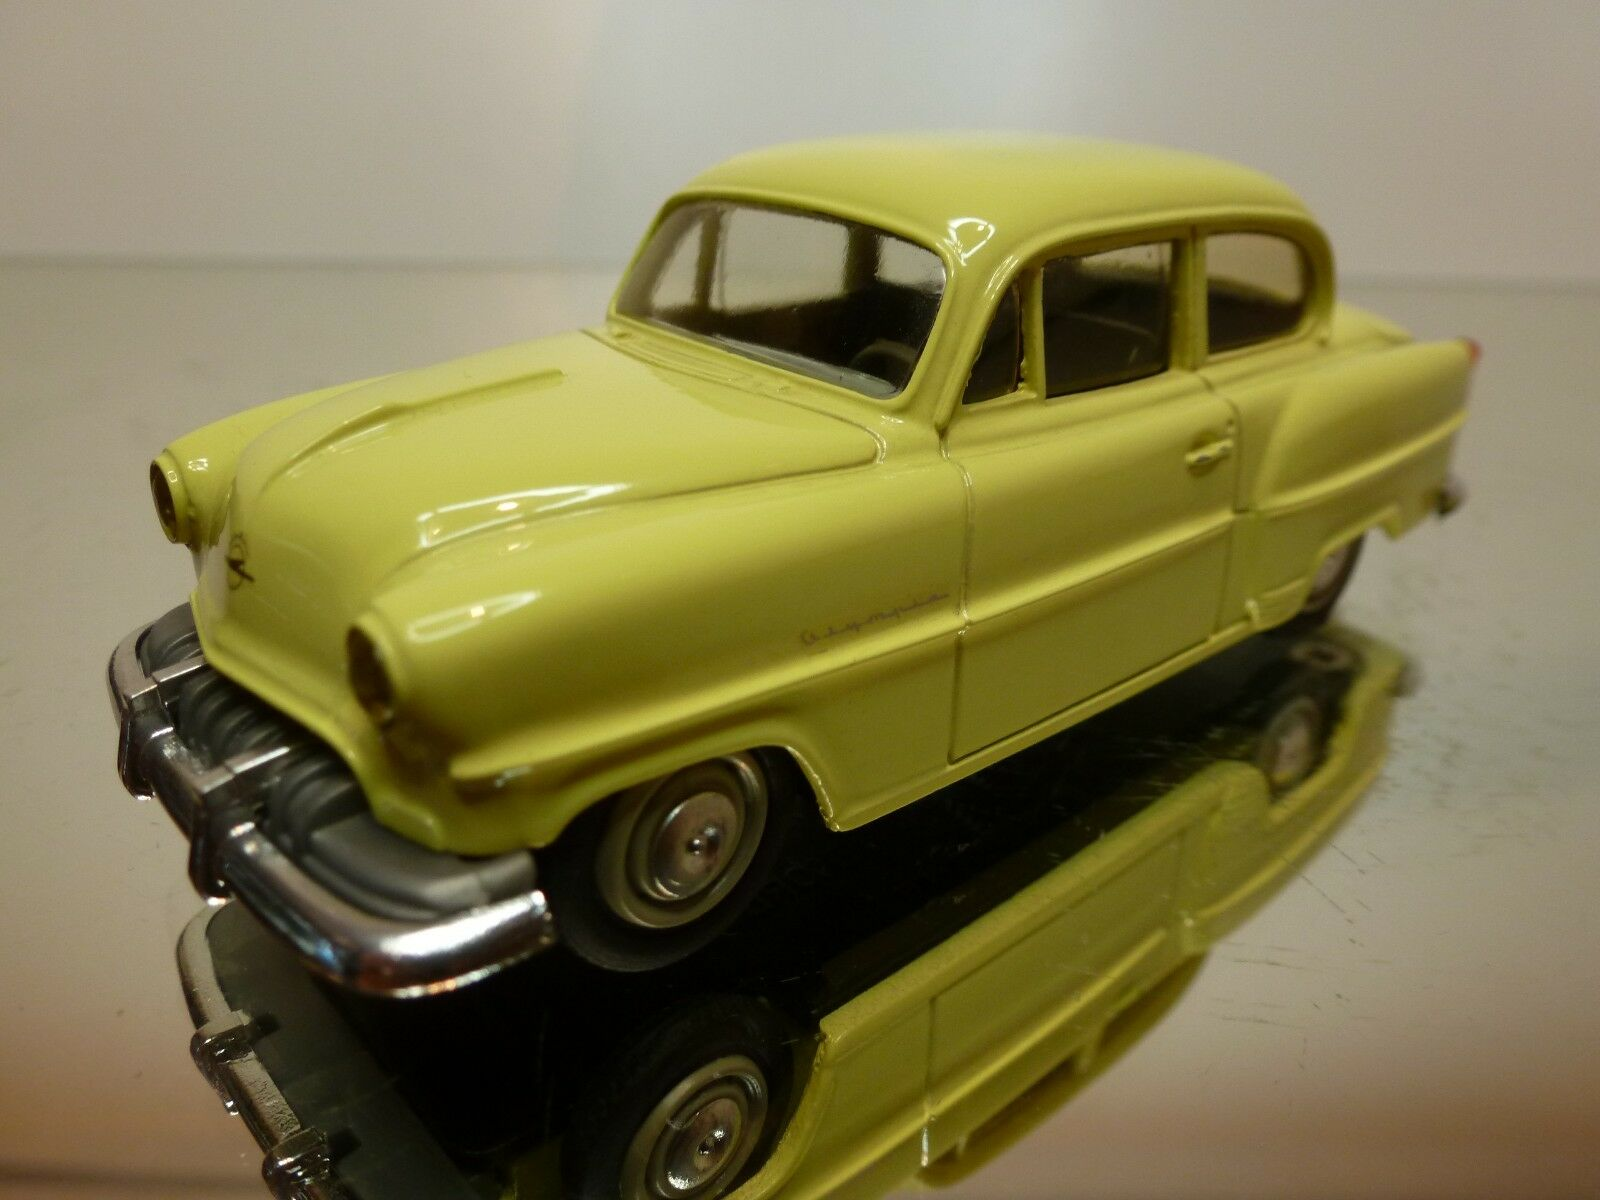 LEADER OPEL OLYMPIA REKORD - YELLOW 1 43 43 43 - VERY GOOD CONDITION - 2 3 cc0be1